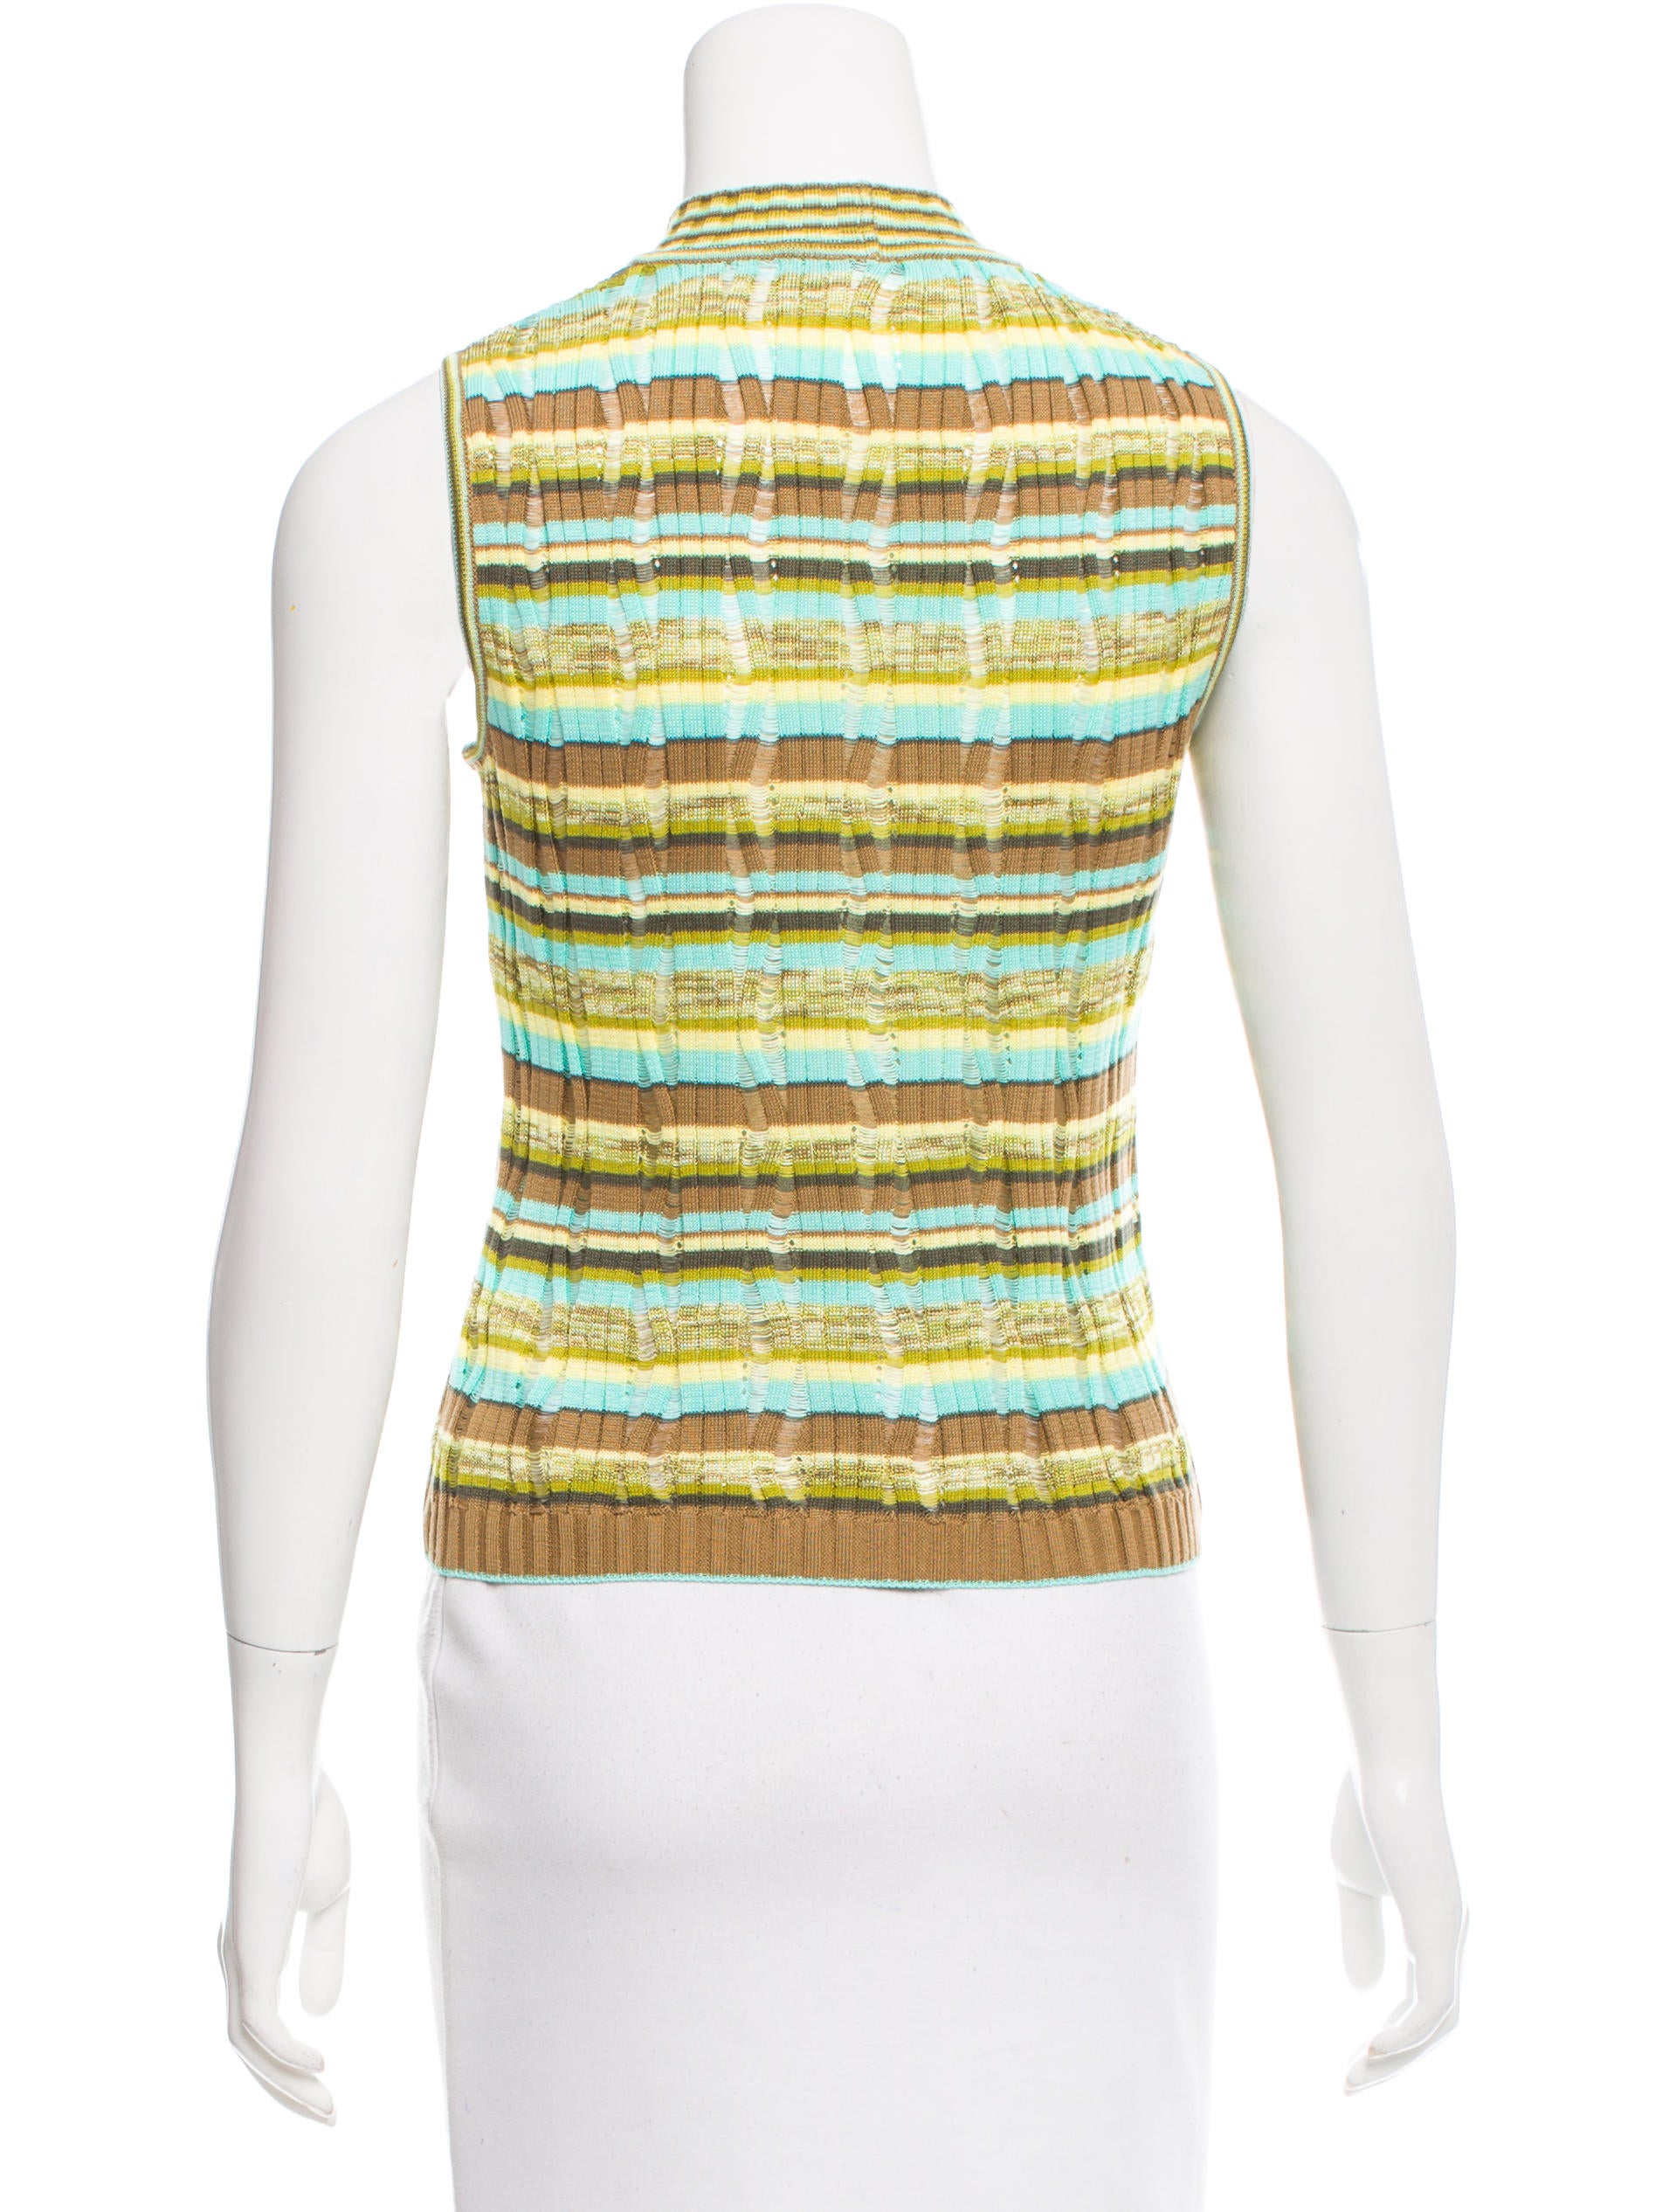 M missoni mock neck sleeveless top clothing wm439807 for Sleeveless mock turtleneck shirts